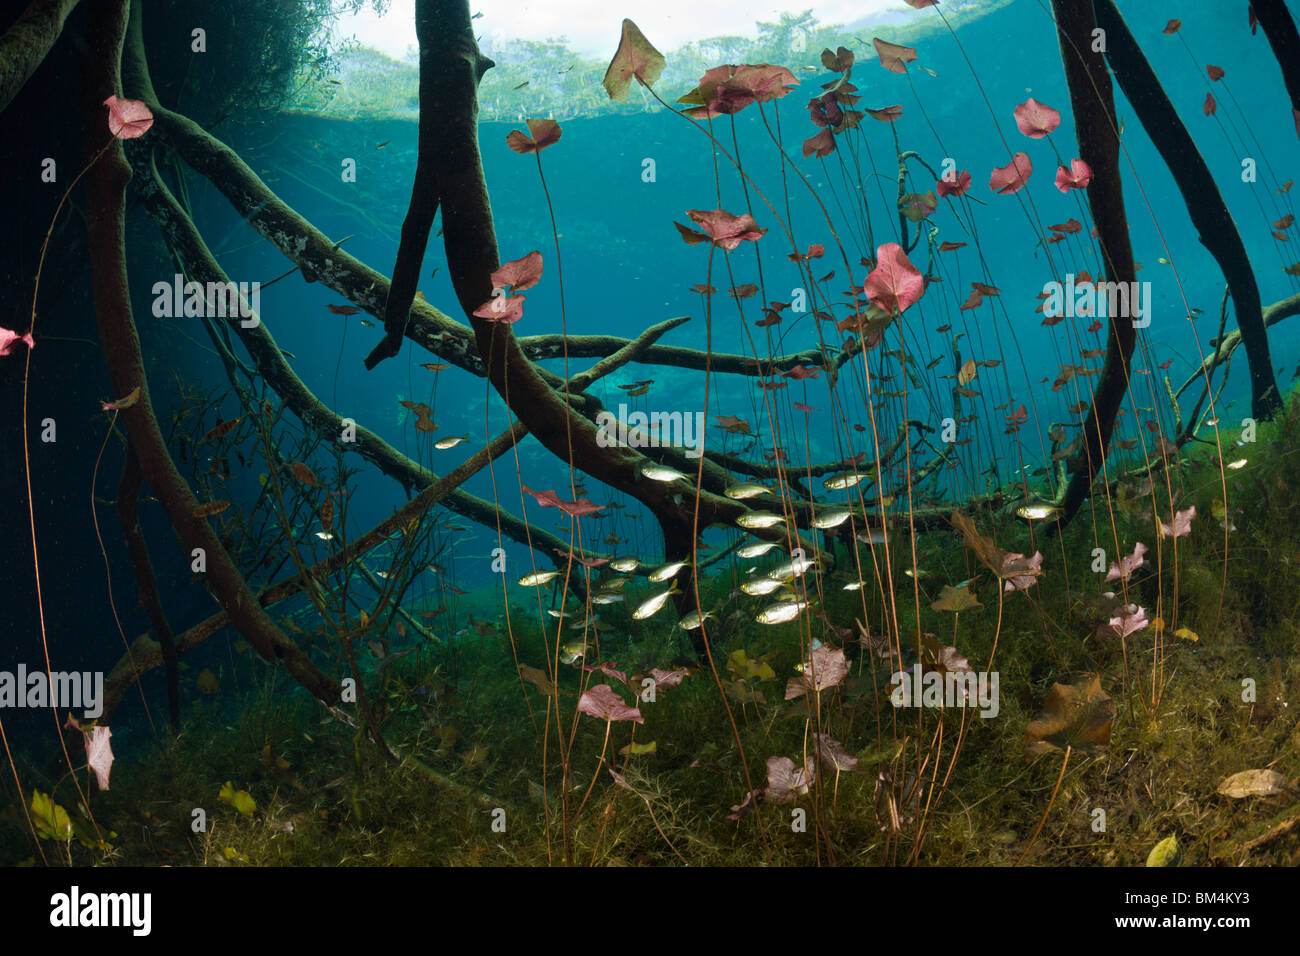 Water Lilies and Shoal of Tetra in Cenote, Astyanax aeneus, Tulum, Yucatan Peninsula, Mexico - Stock Image